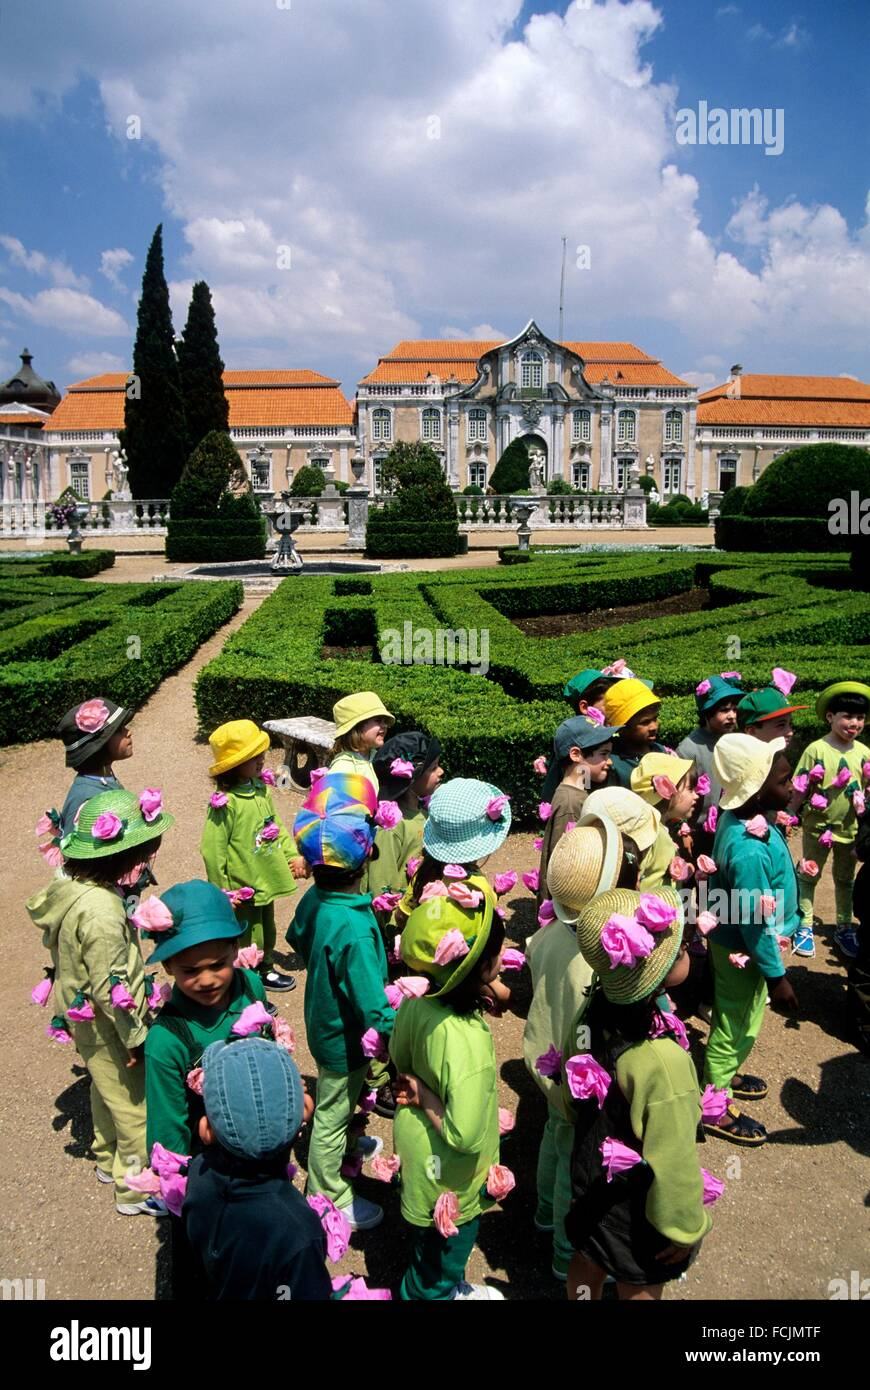 children in the gardens in front of the facade of the ballroom wing, Queluz National Palace, Portugal, Southern - Stock Image